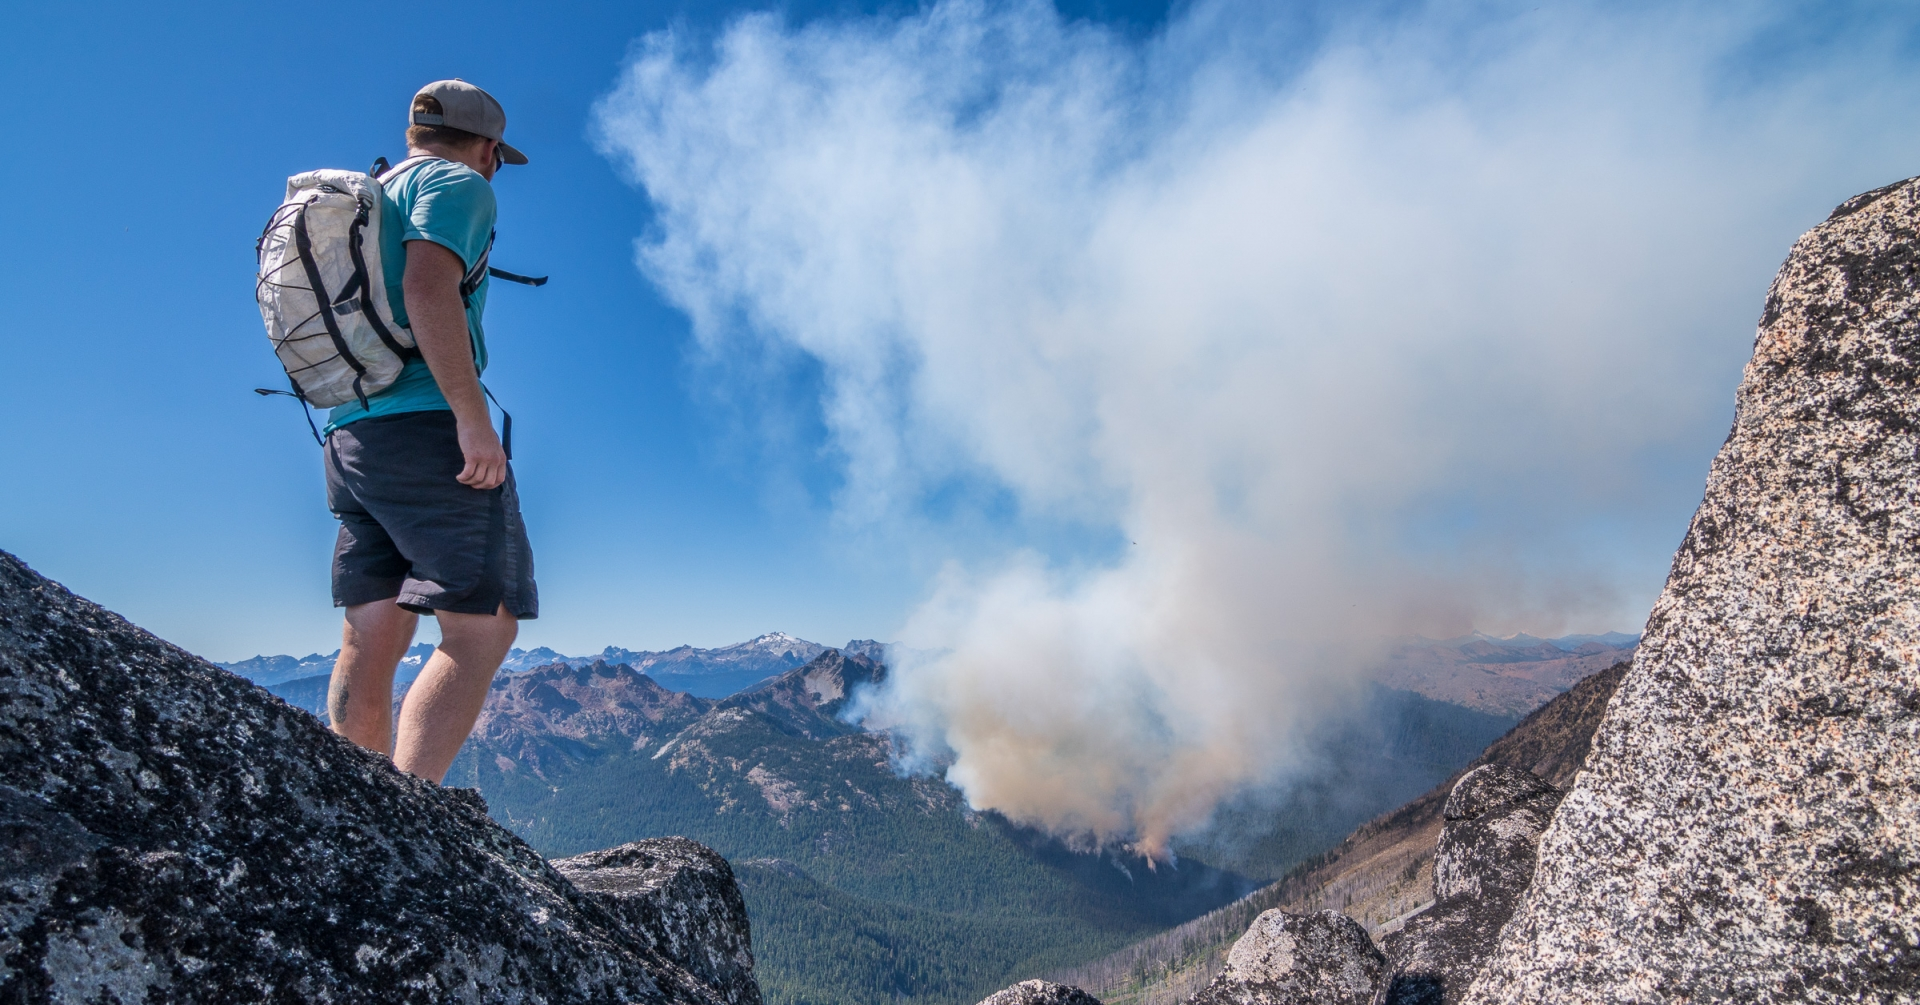 Protect Your Health From Wildfire Smoke